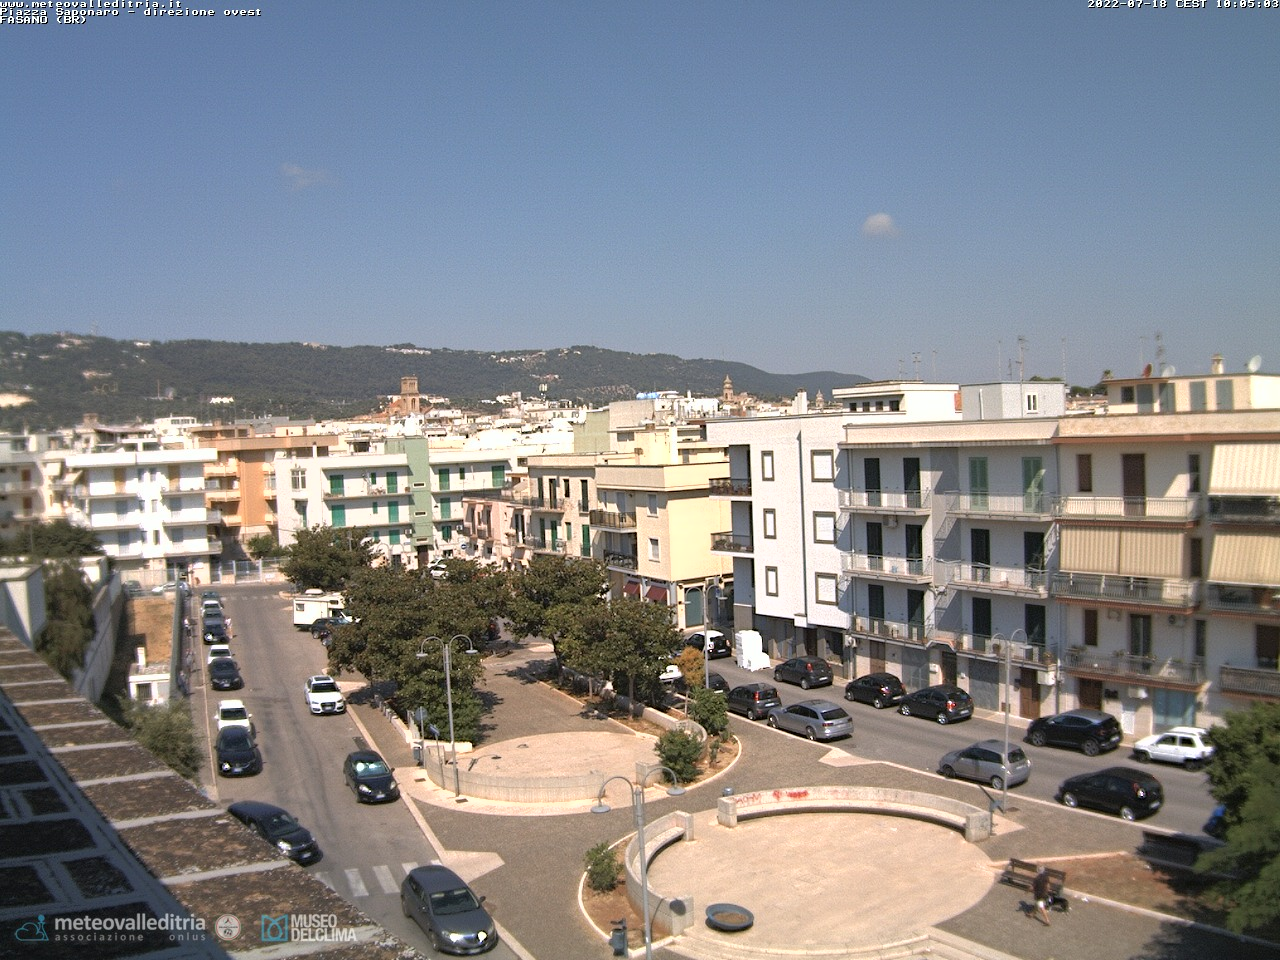 webcam Torre Canne